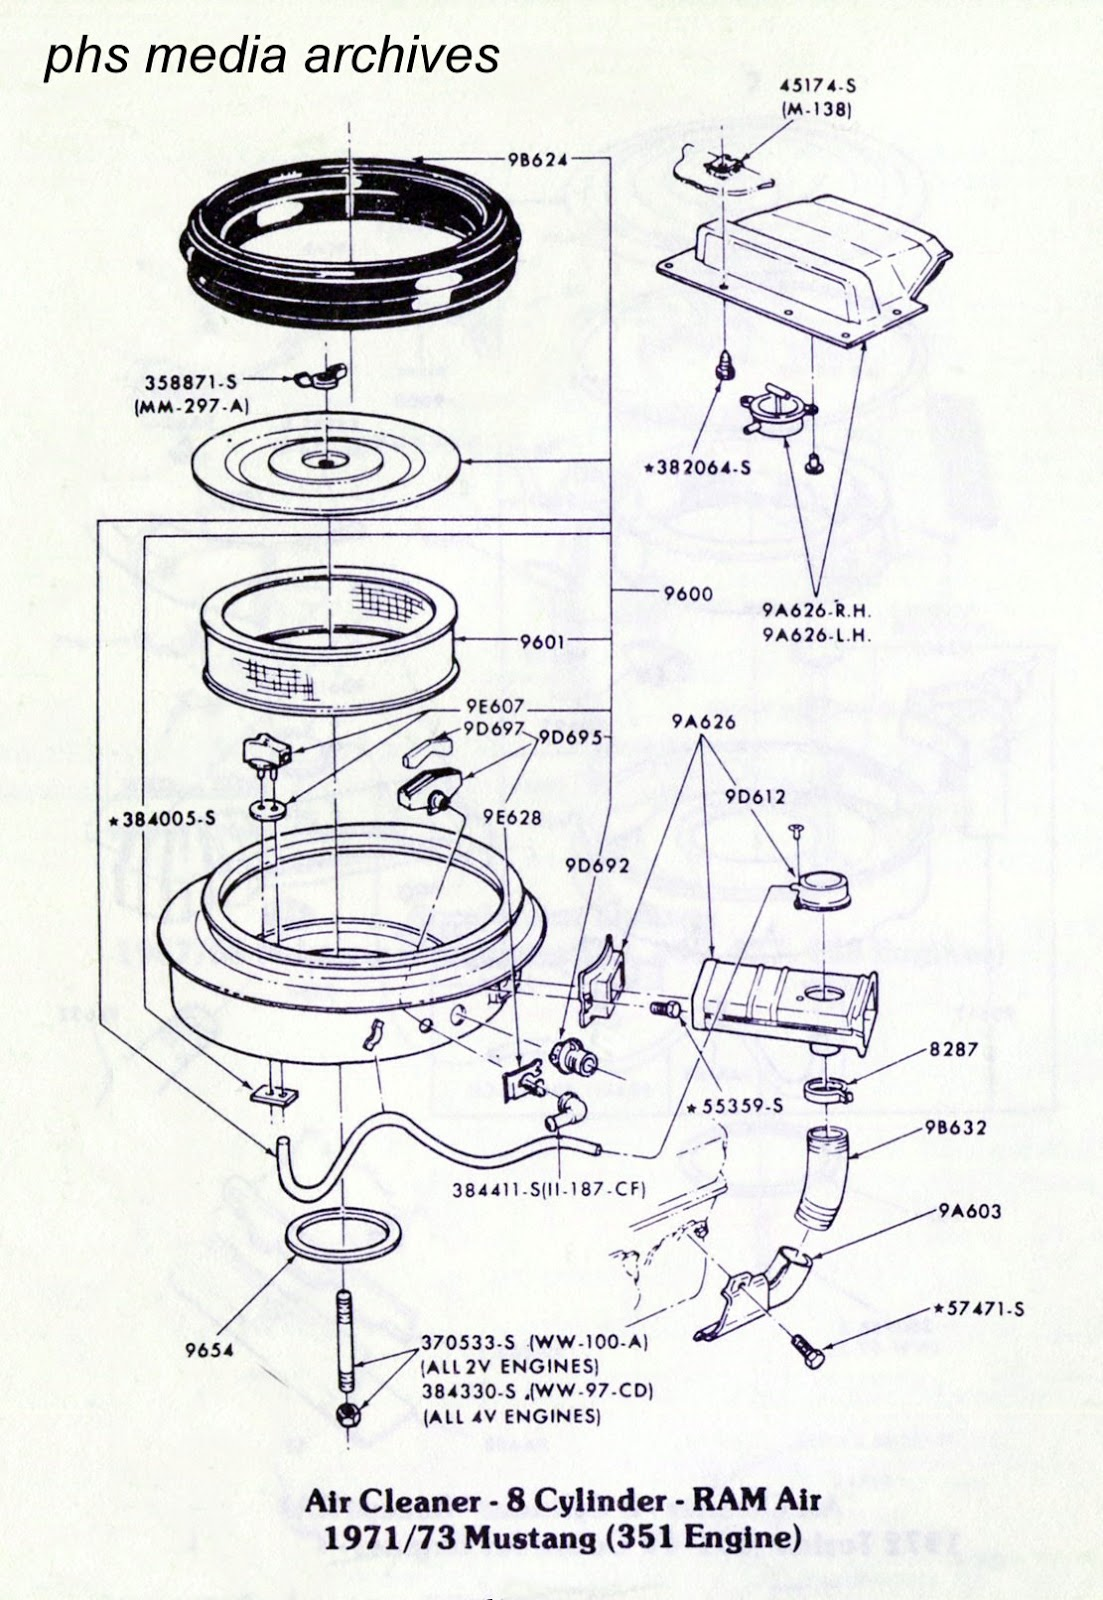 small resolution of the ram air cleaner system for the 351 4v engine is shown above note that in the drawing there are specific part numbers for certain pieces where